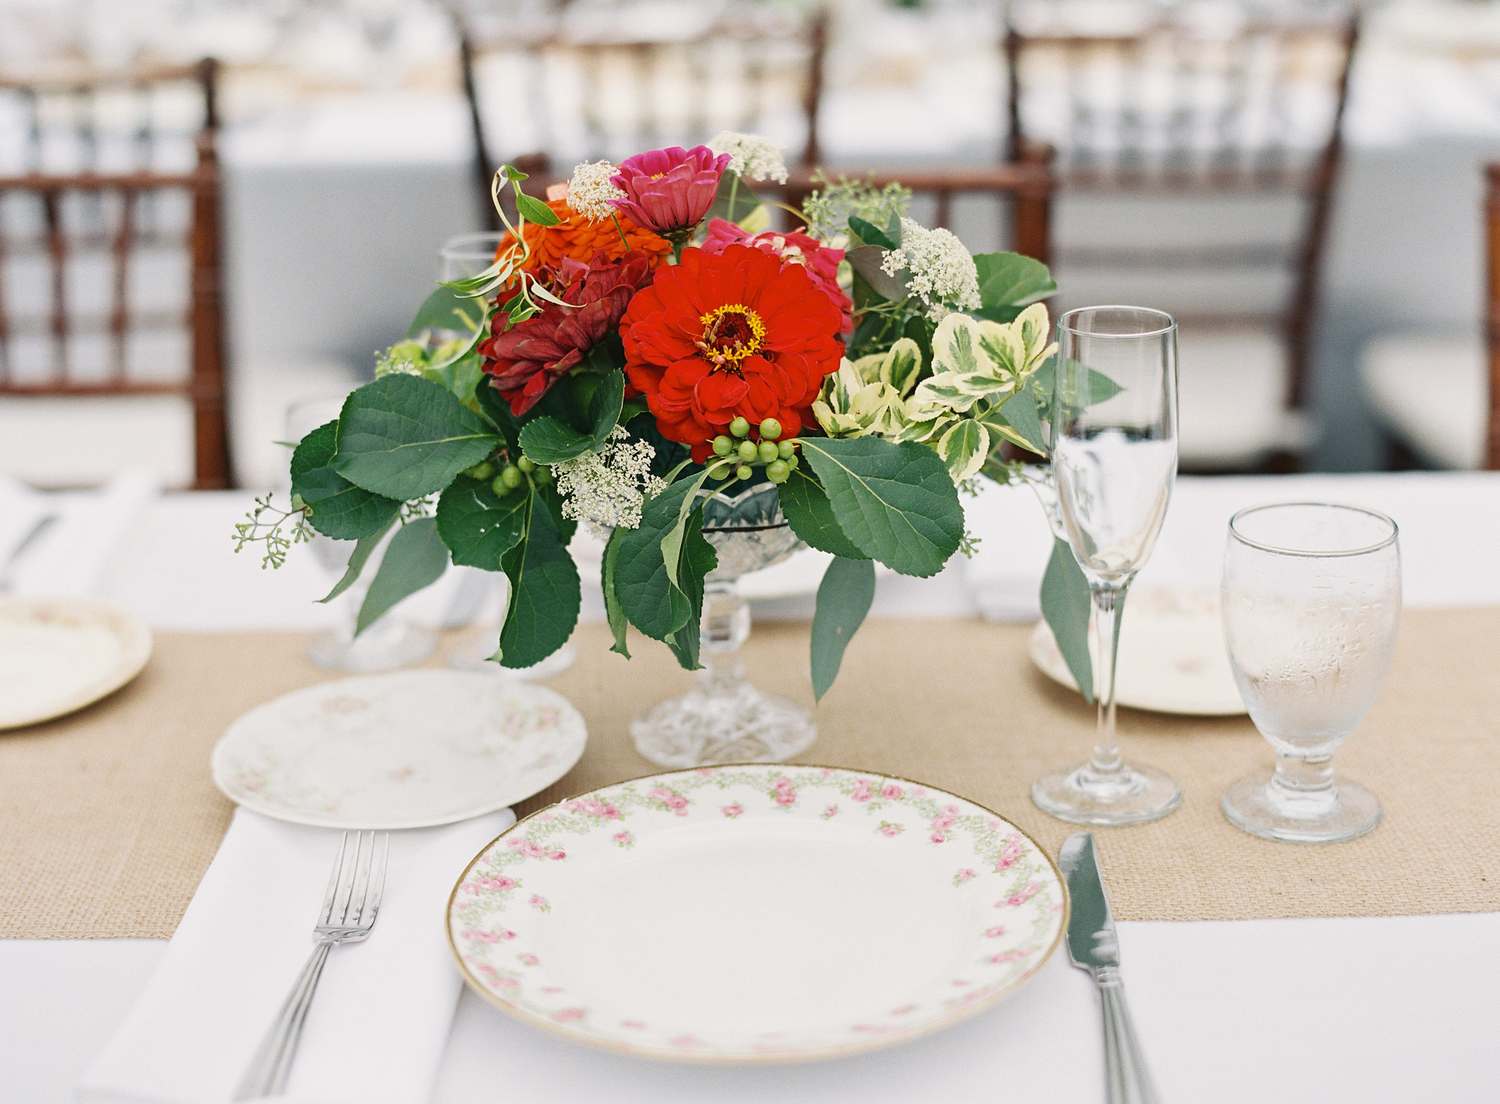 Antique china - .We have enough place settings for over 130 guests if you wish to achieve the